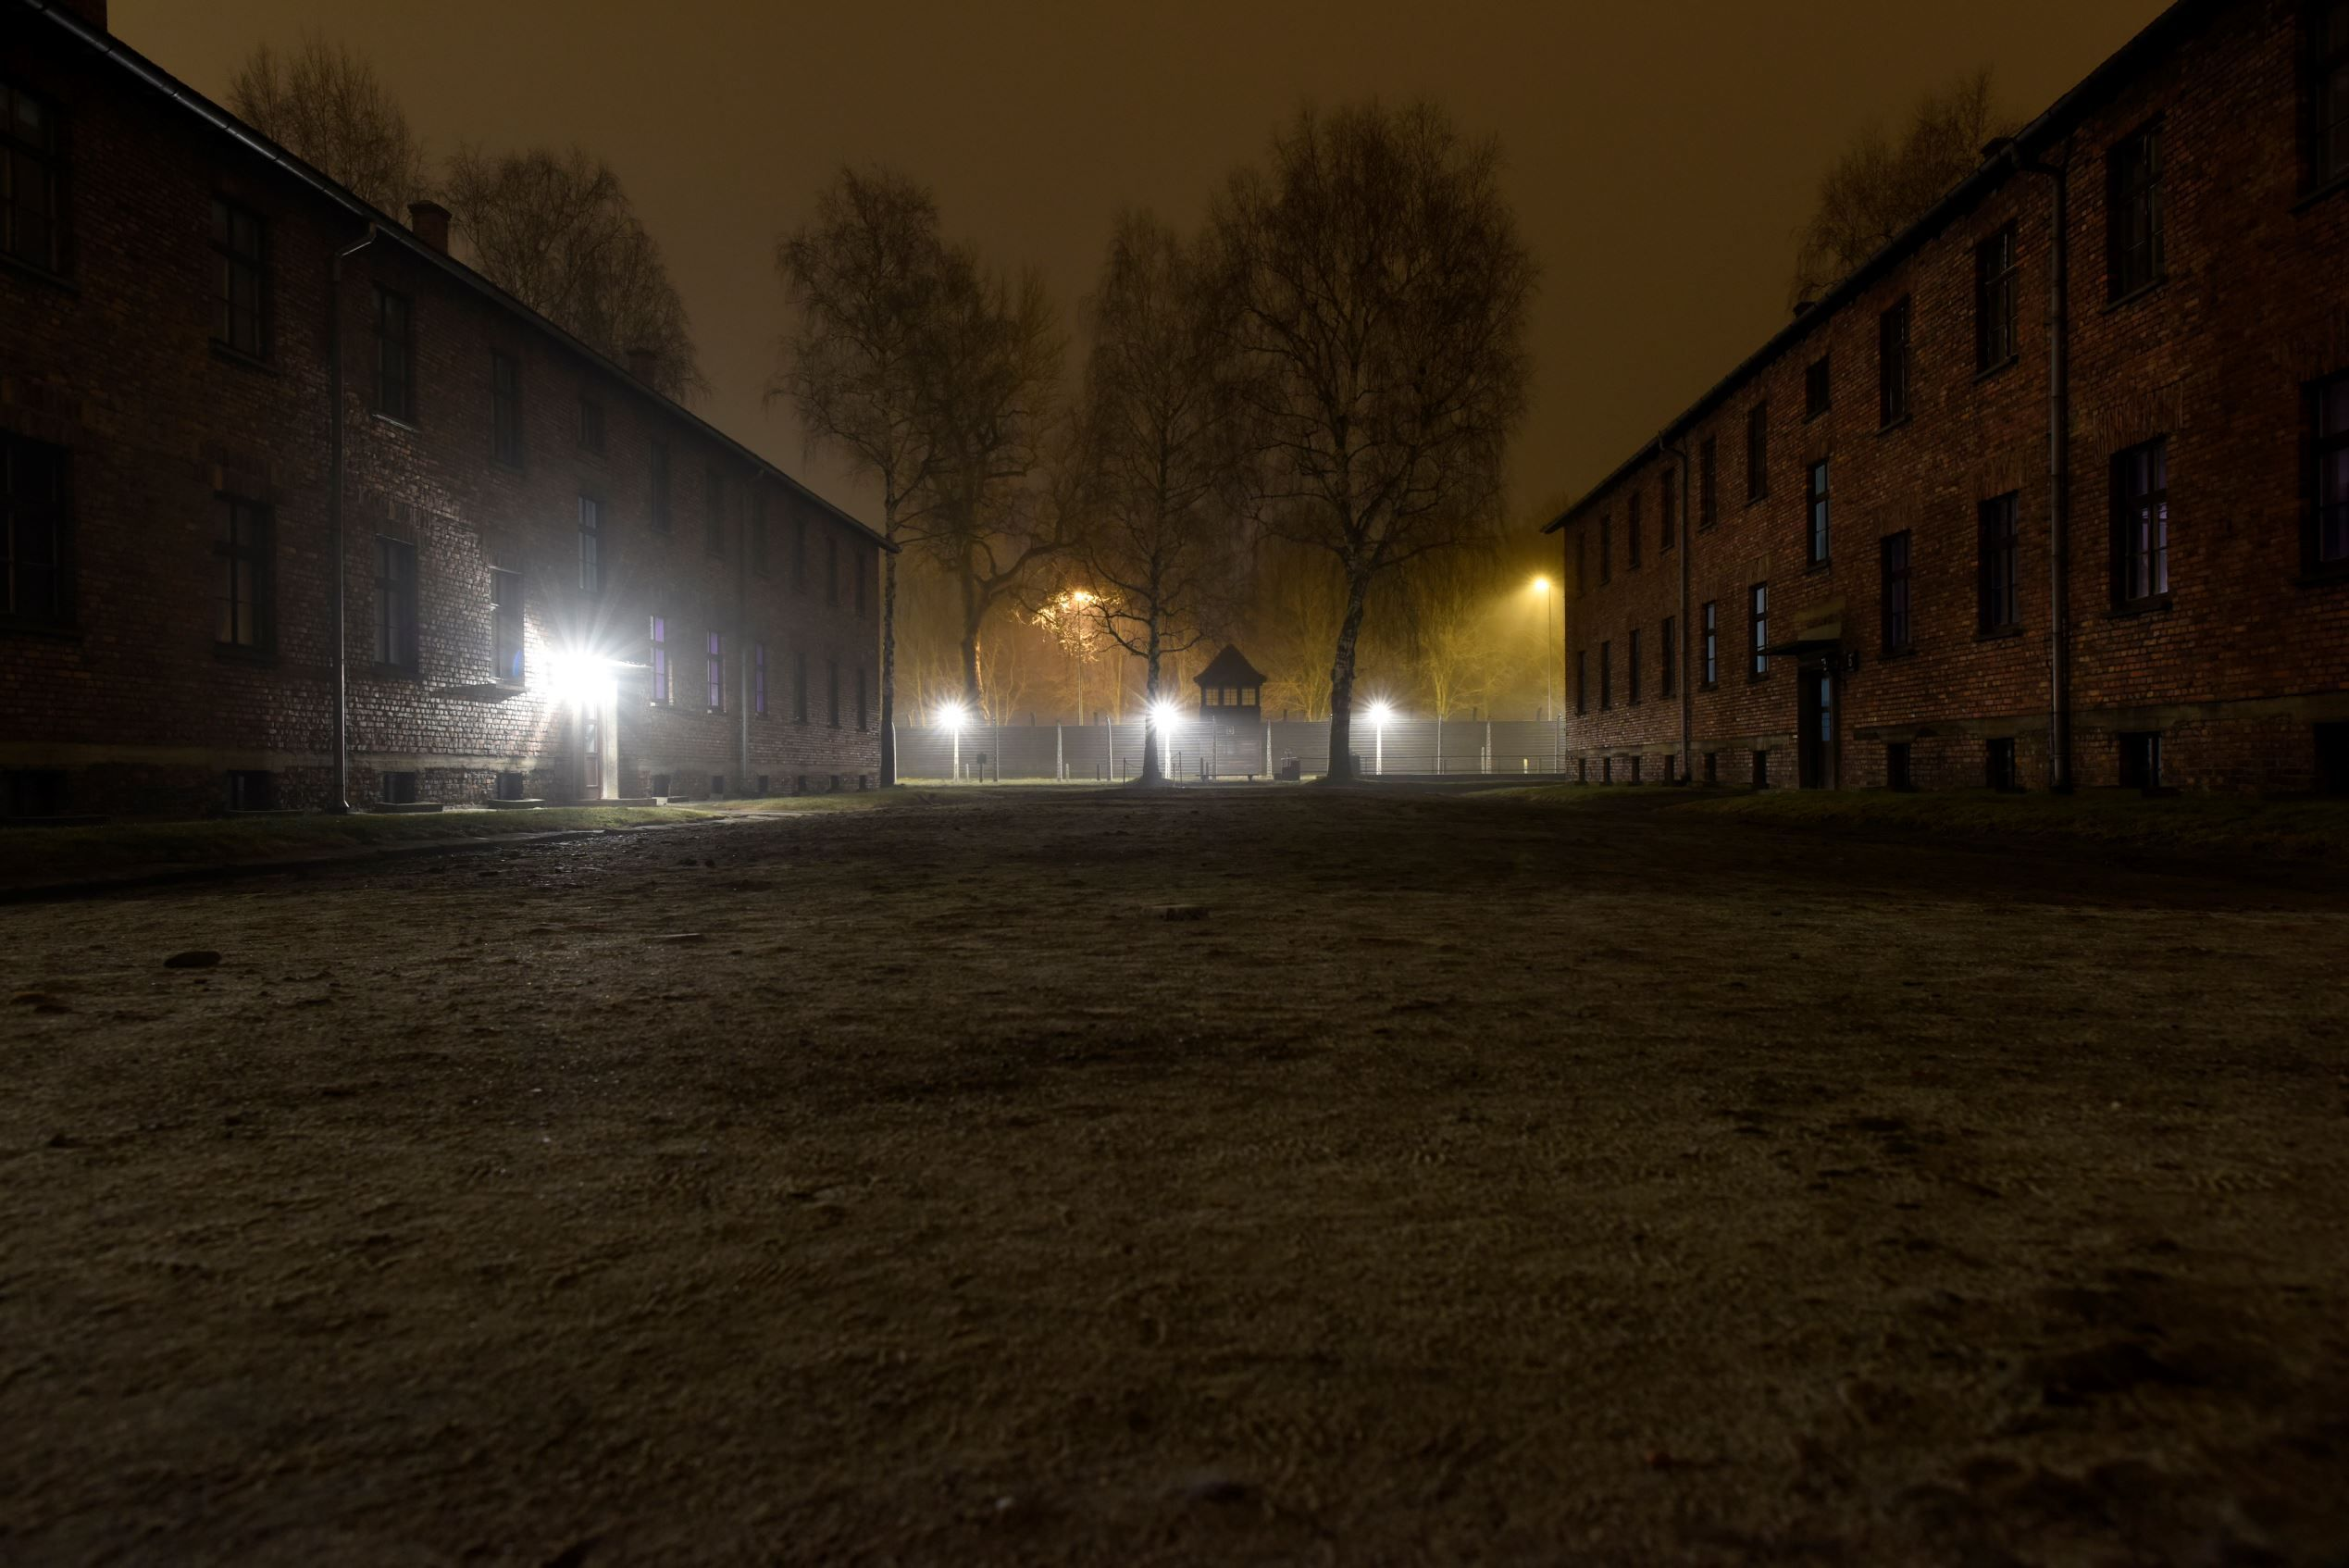 Ghosts of Auschwitz - © REUTERS/Pawel  Ulatowski  - General view of the former German Nazi  concentration and extermination camp Auschwitz in Oswiecim.